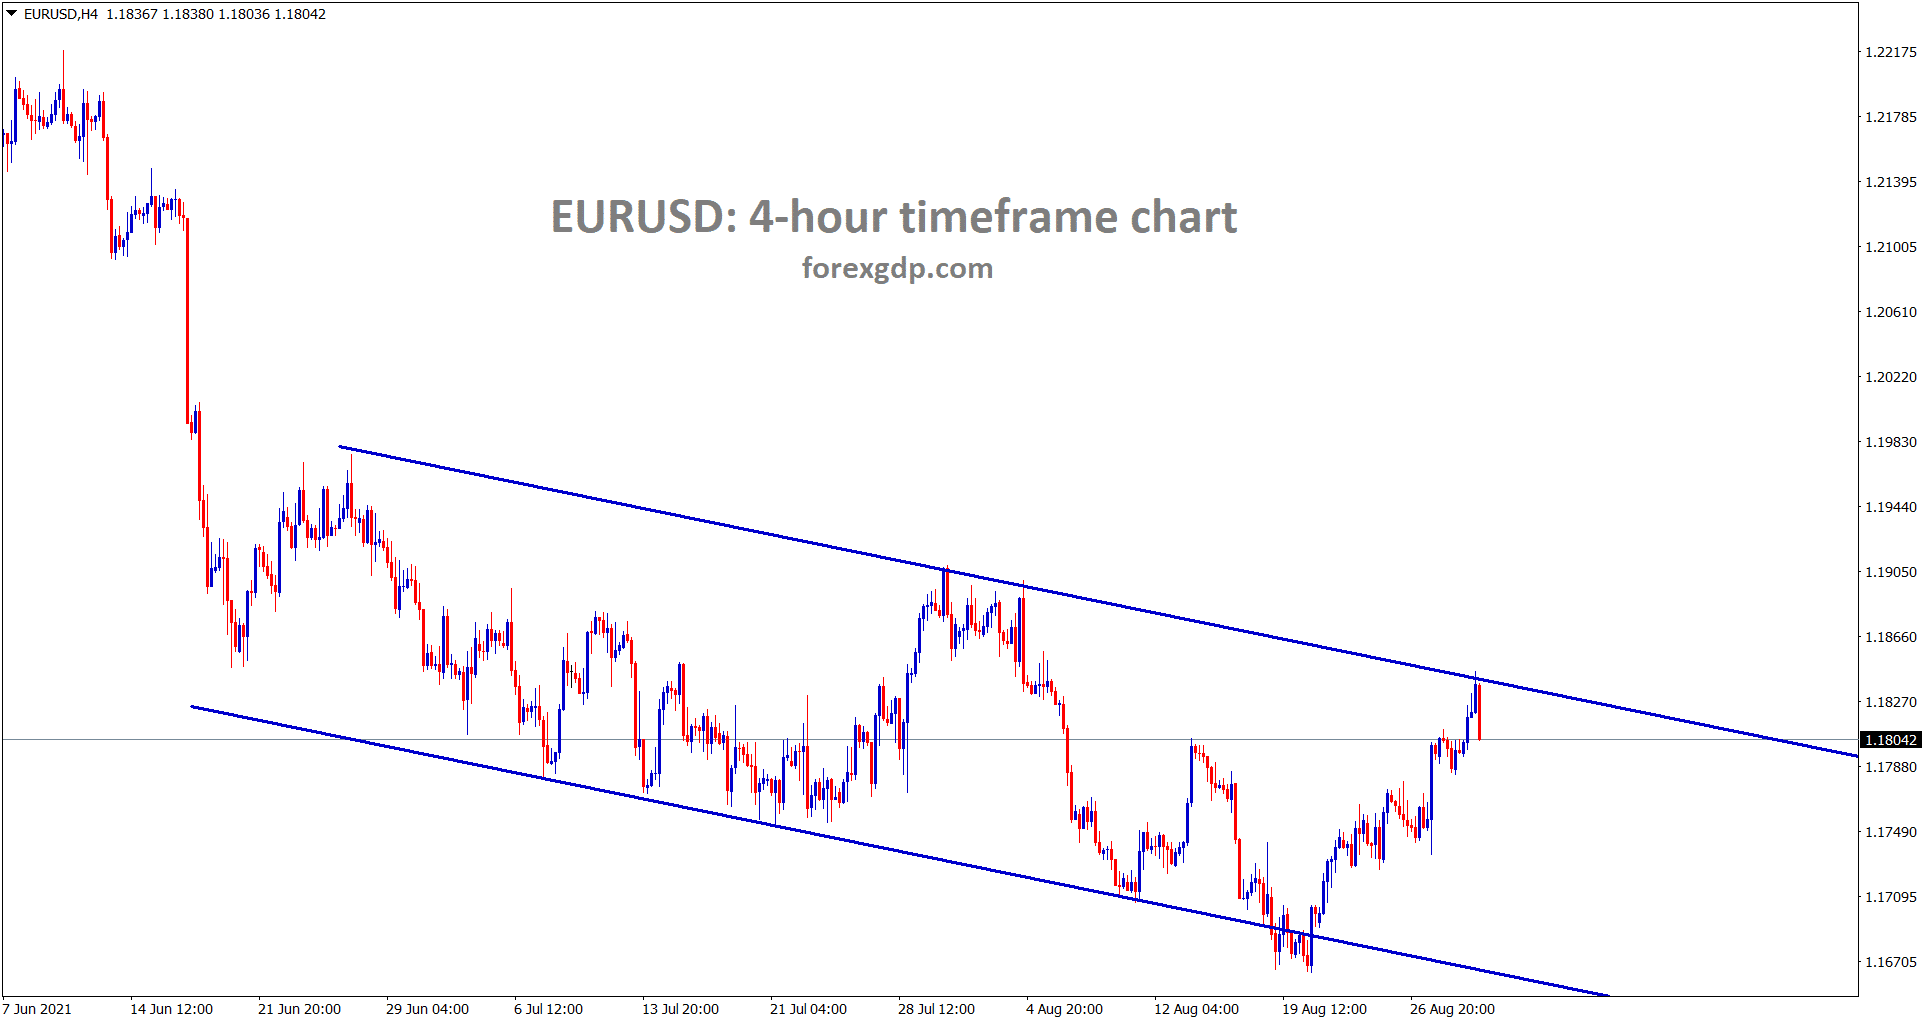 EURUSD is falling from the lower high level of the descending channel